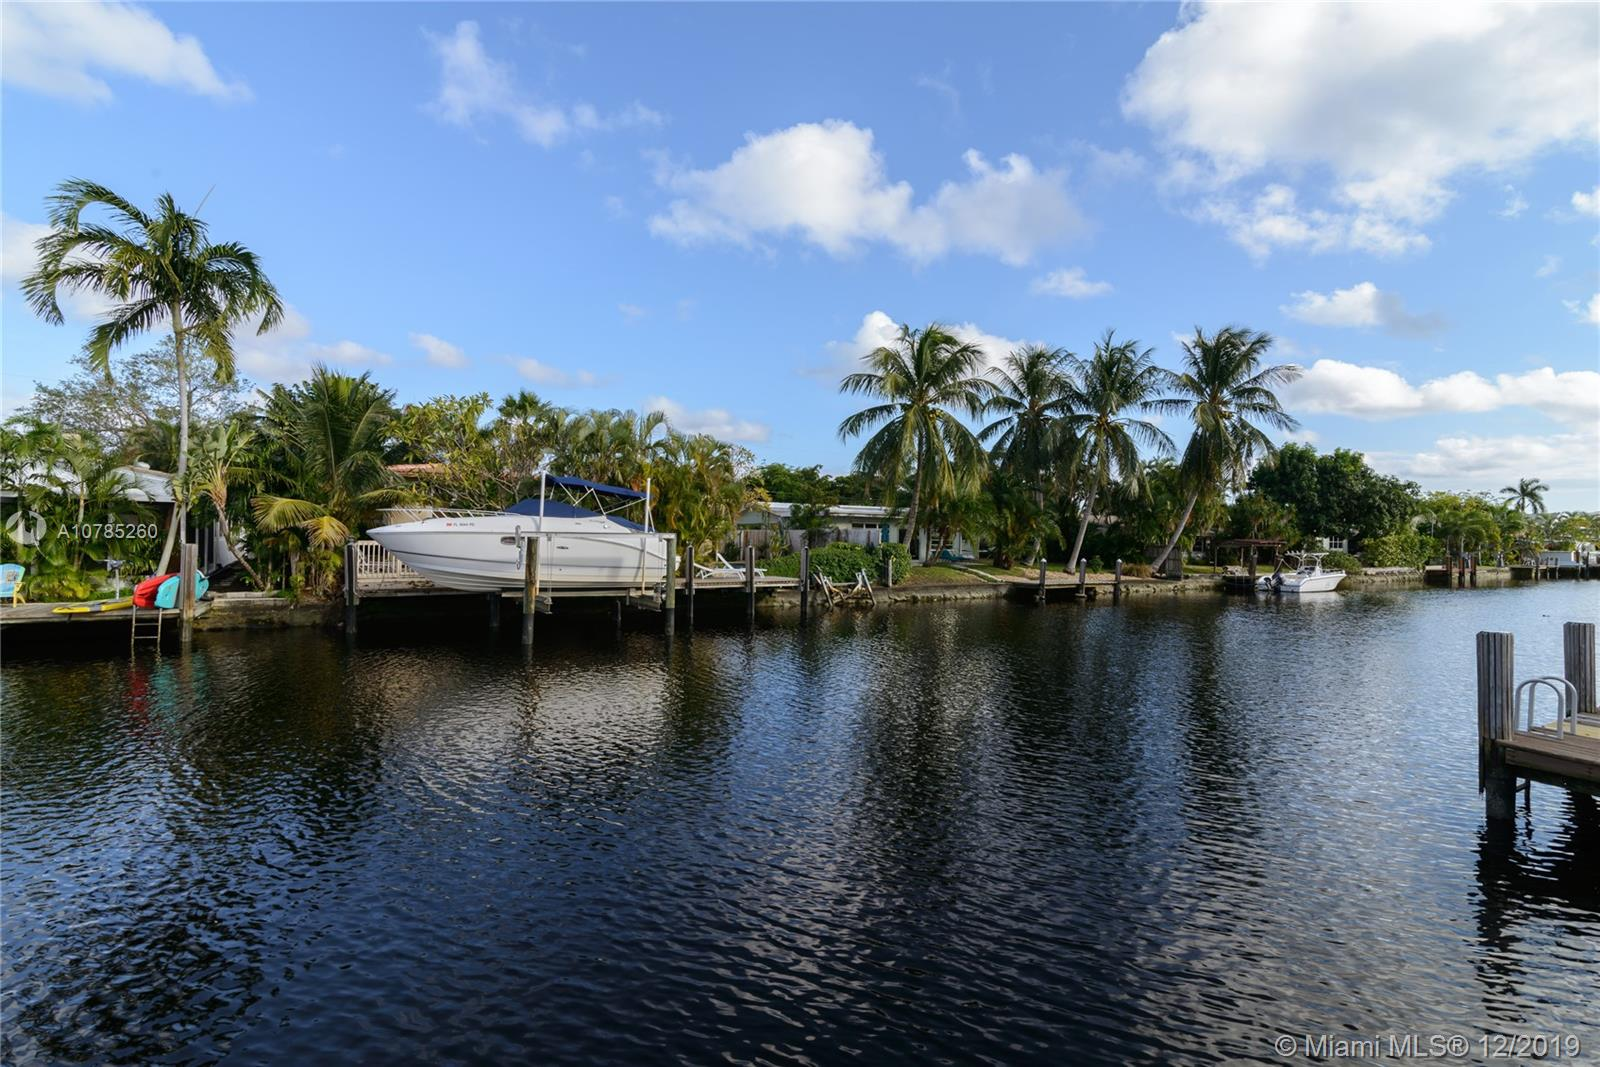 "Waterfront Home with Ocean Access. Great location in the Heart of Wilton Manors. Boat Lift and 30' dock set on an 80' wide canal. Priced under market value- this home is a great buy for the right buyer looking for an ocean access home at an amazing price. Open concept with a great room perfect for entertaining with scenic water views. Large Kitchen with 42"" cabinets and granite counter tops and stainless steel appliances. Tastefully remodeled with tile floors and a newer roof and hot water heater. Circular driveway and a 2 car carport allows parking for more then 6 cars. Perfect location- Beach, shopping, restaurants are less then 10 minutes away. This is a great price for a great home! Buyer Must use Sellers Title Company. SEAWALL IS BEING REPAIRED BY SELLER! SEE REQUIRED ATTACHMENTS"